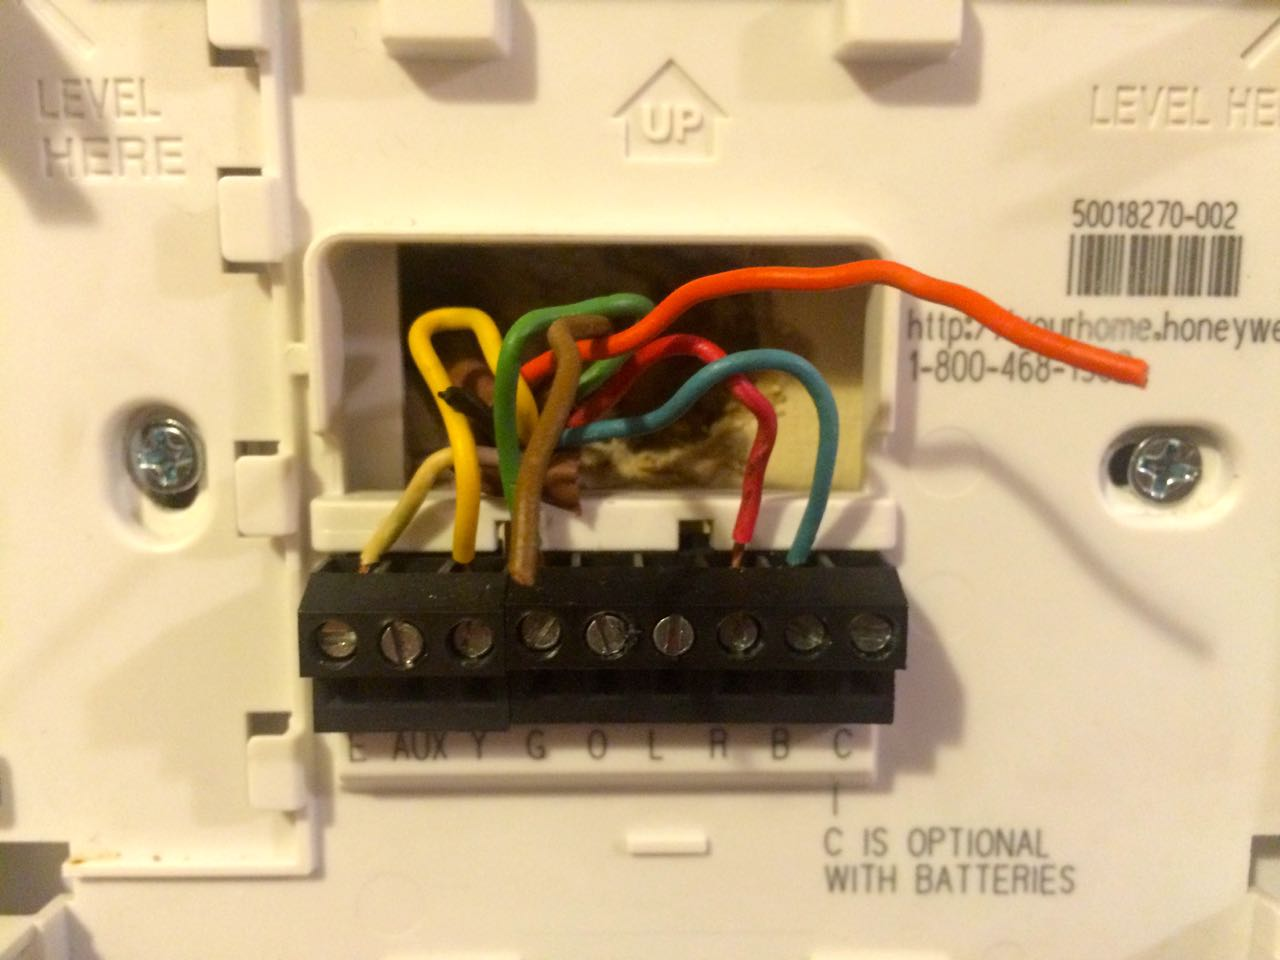 Wiring a RUDD heatpump to a Honeywell thermostat. I have a Honeywell on